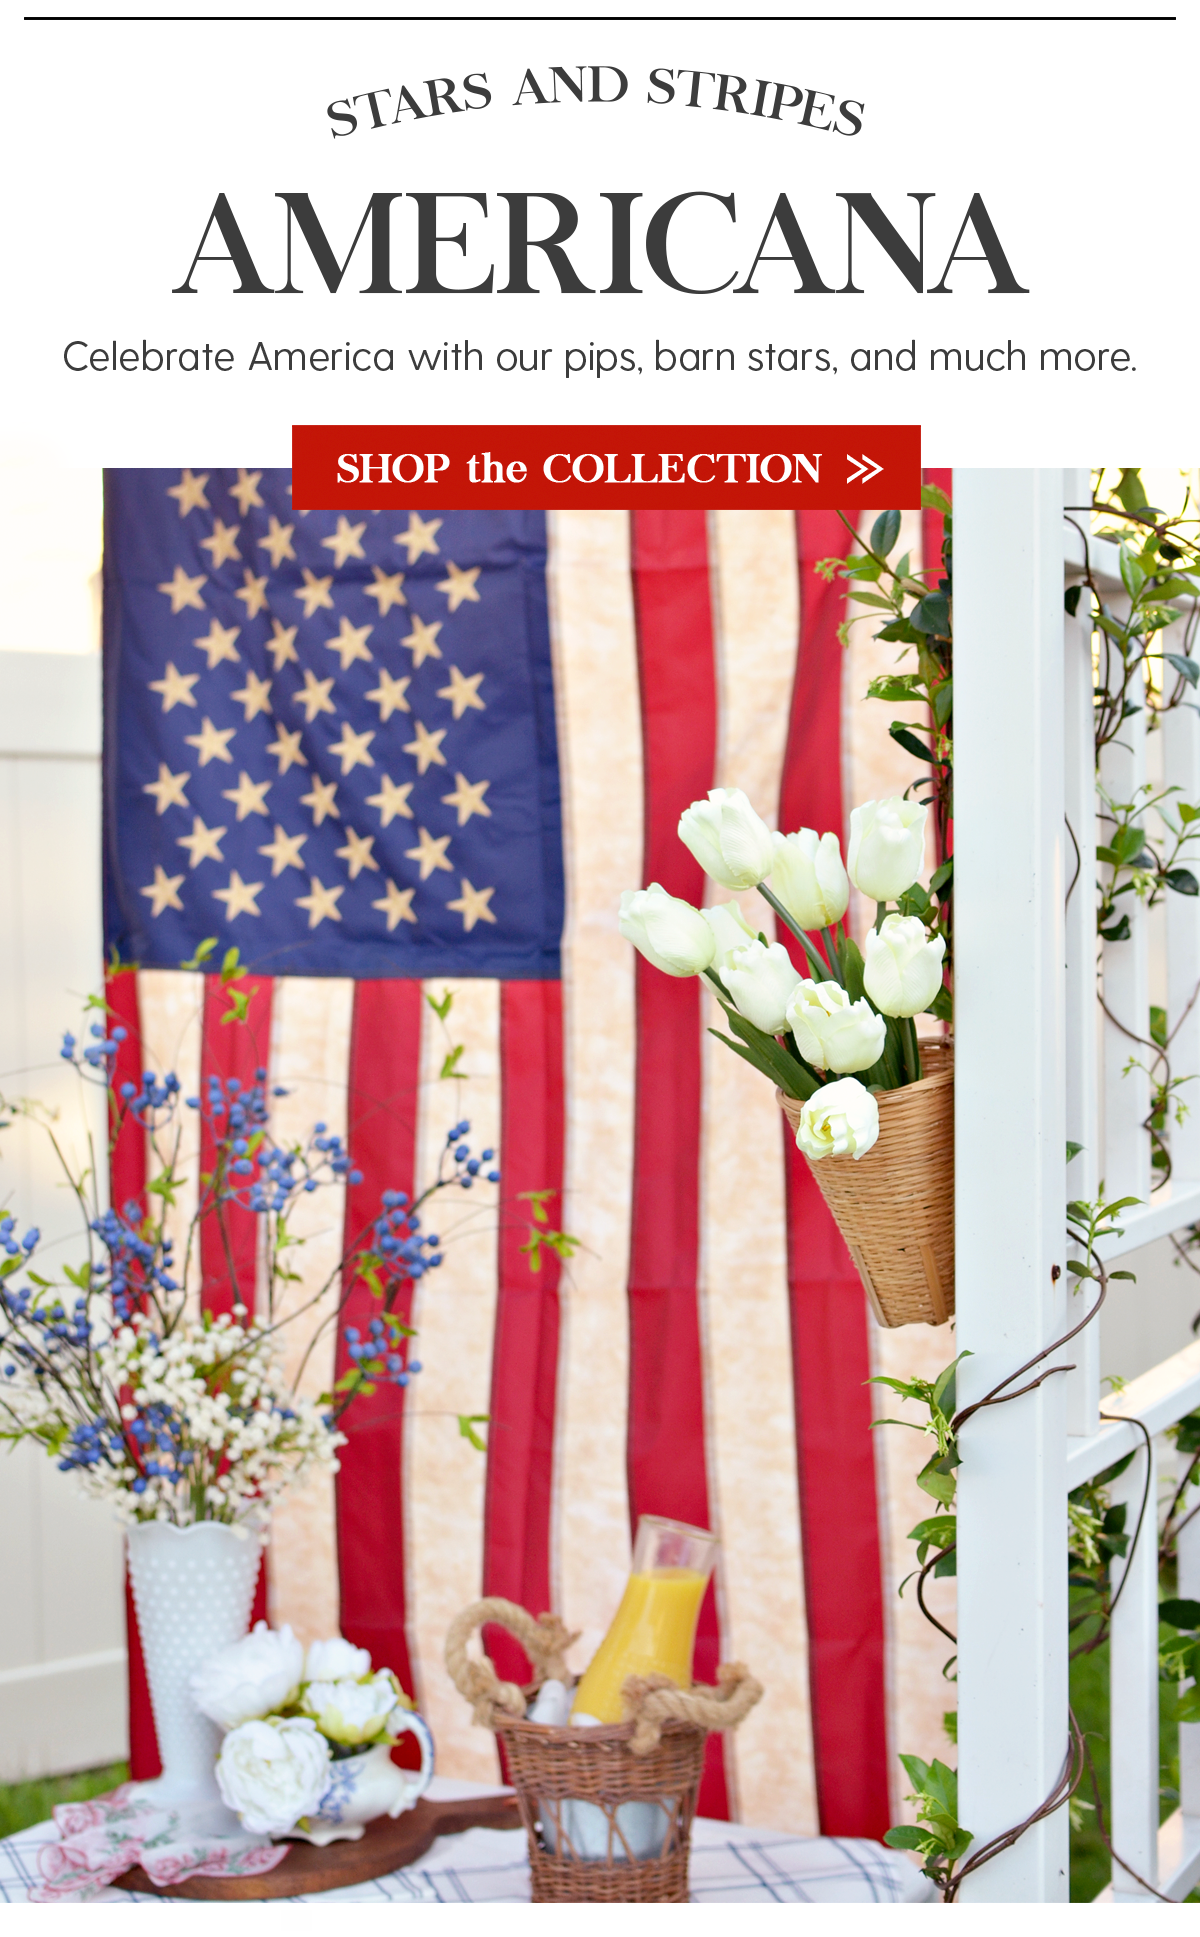 Stars and Stripes Americana Celebrate America with our pips, barns stars, and much more. Shop the Collection